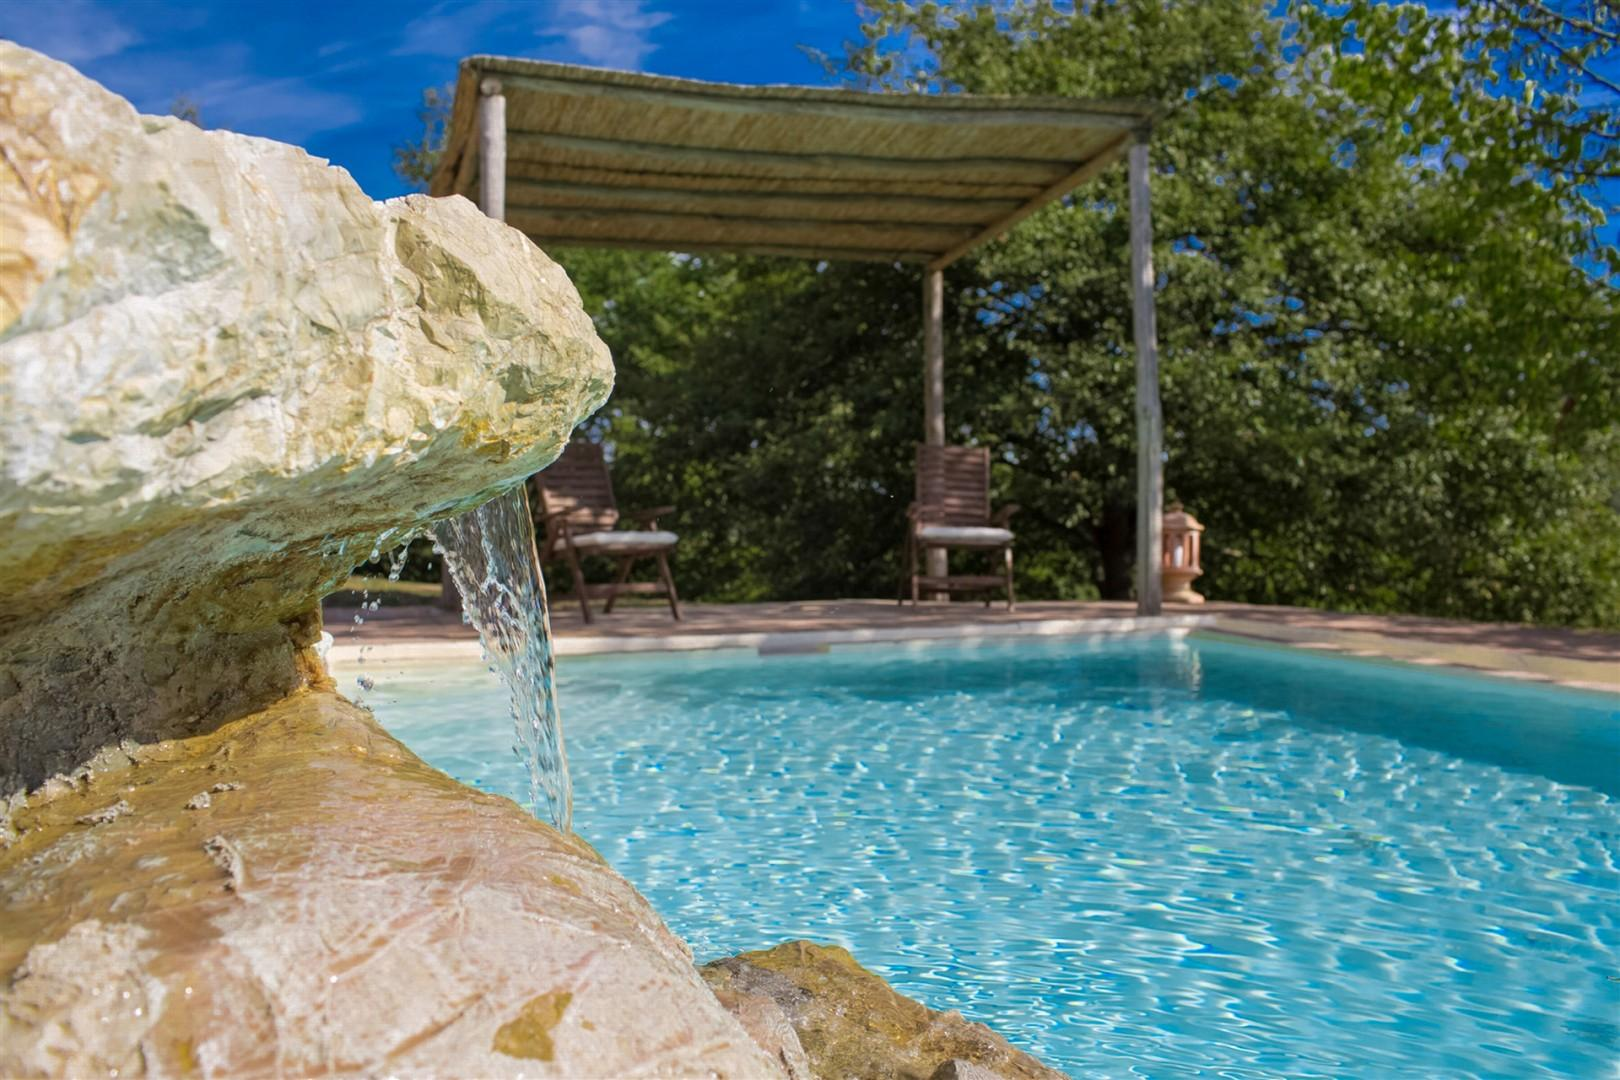 The pool has a pleasant waterfall element. A pergola at the far end of the pool provides shade.